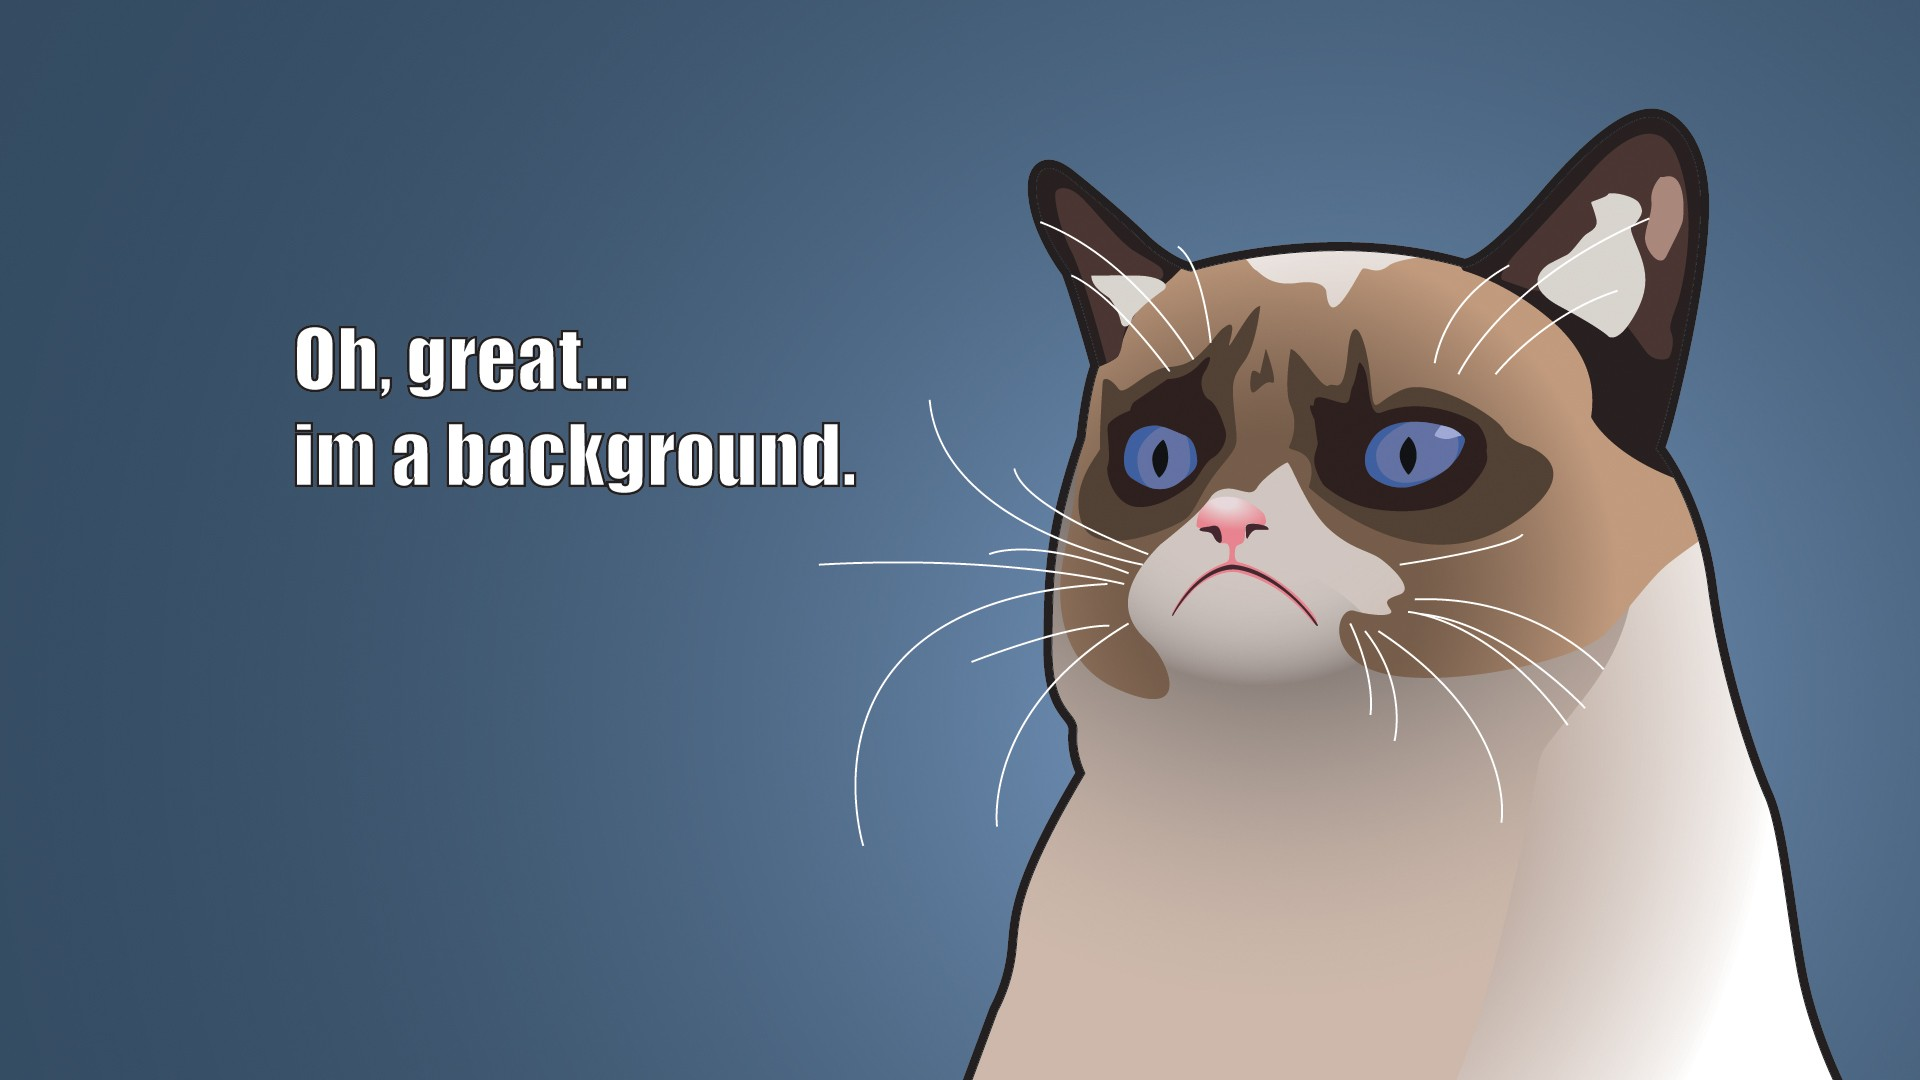 Grumpy Cat Meme Pictures humor funny cats r wallpaper 1920x1080 1920x1080